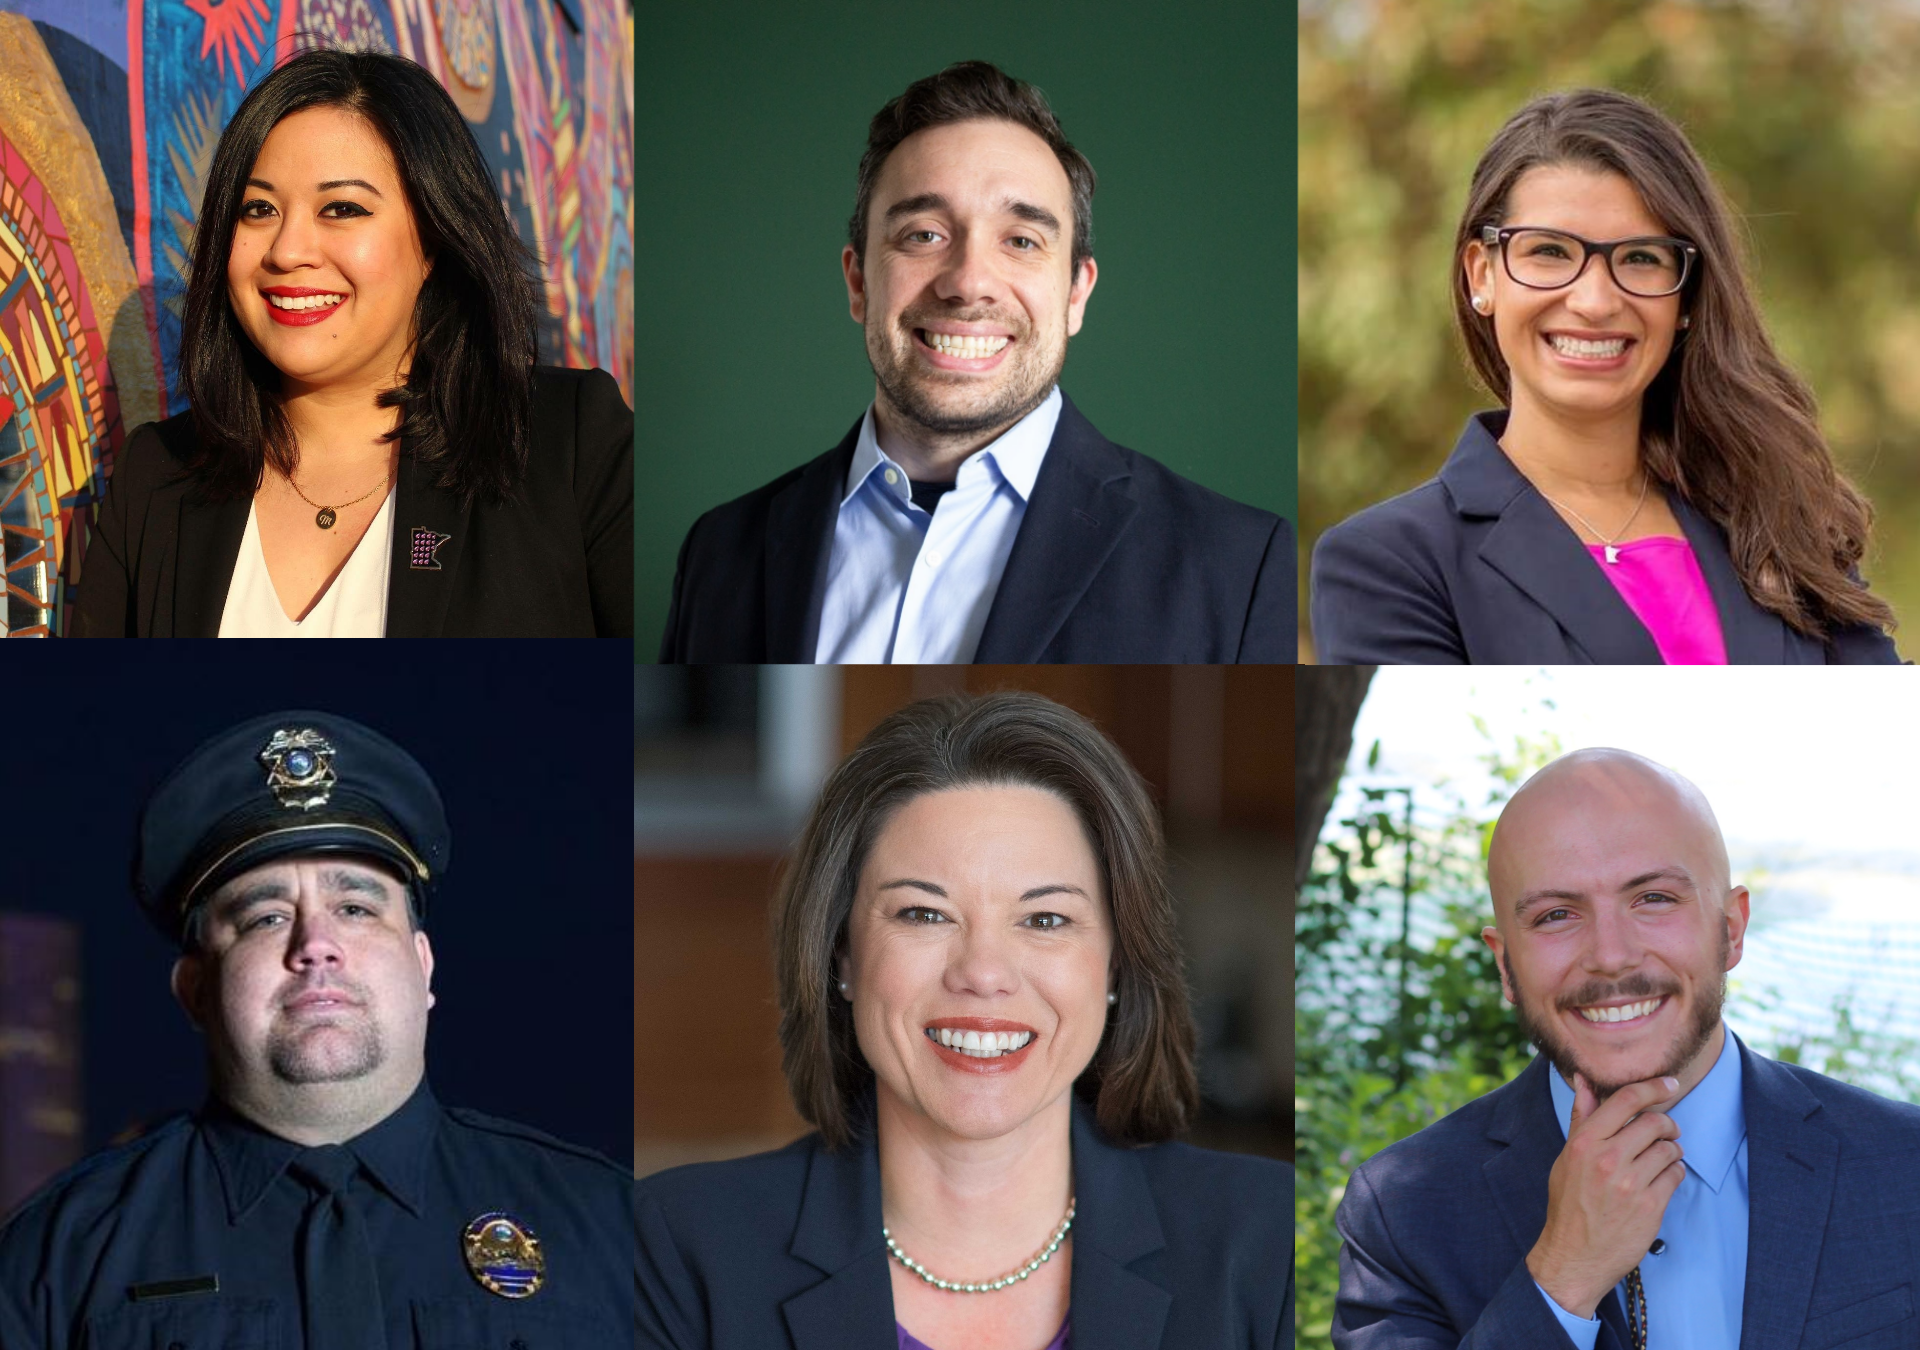 "Top row from left: Mitra Jalali Nelson for St. Paul Ward 4, Matt Pelikan for MN Attorney General, Erin Maye Quade for Lieutenant Governor. Bottom row from left: Dave ""Hutch"" Hutchinson for Hennepin Co. Sheriff, Angie Craig for Congressional District 2, Hunter Cantrell for MN House 56A"